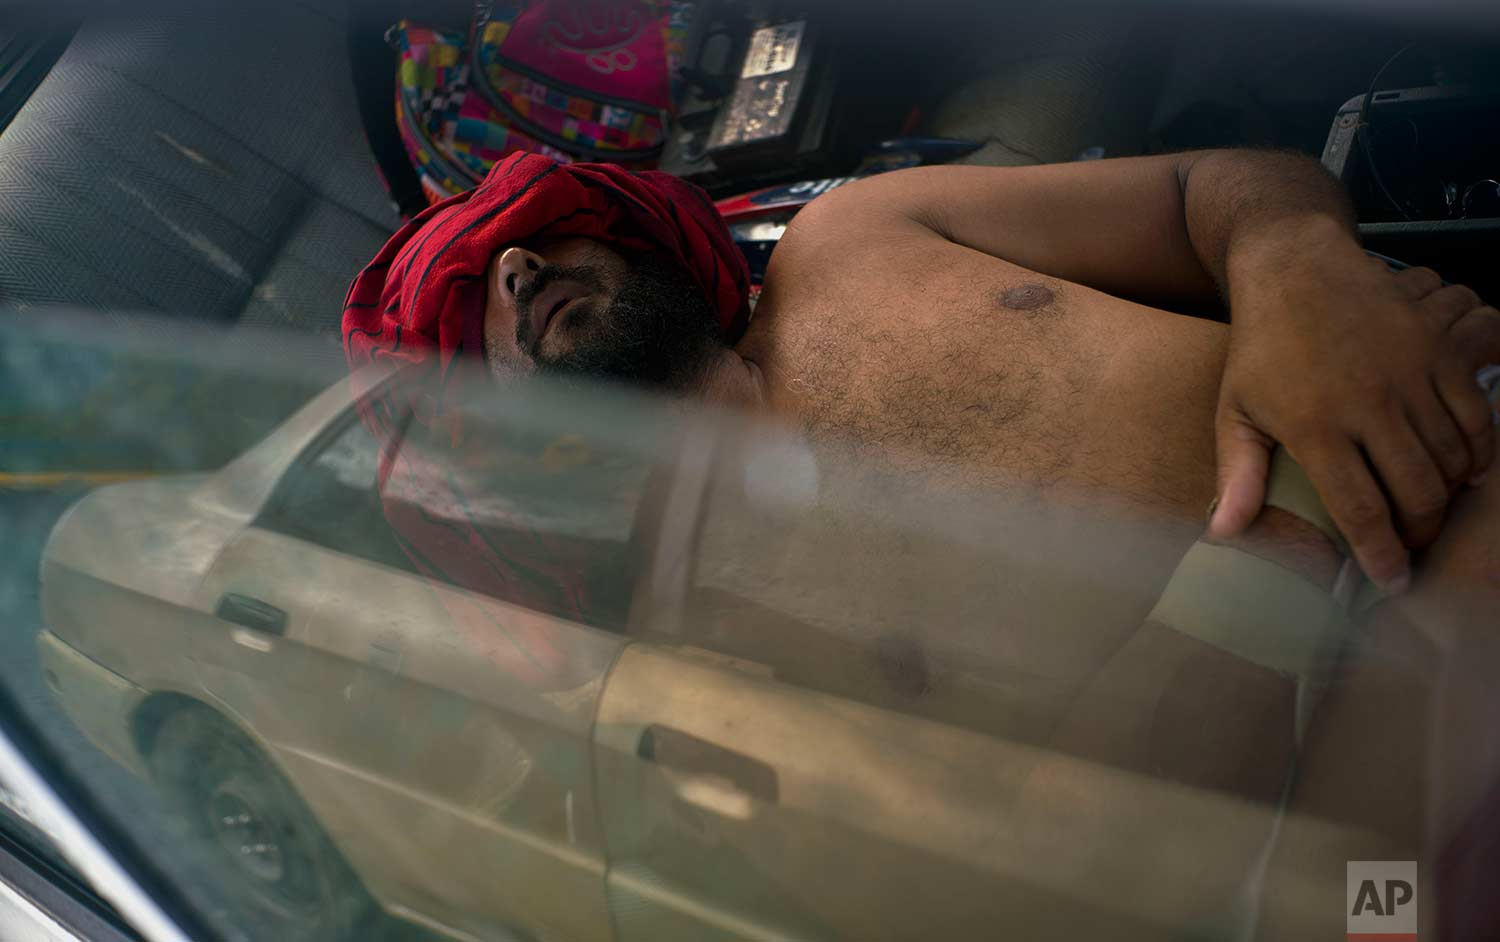 In this Saturday, Oct. 14, 2017 photo, Arturo de Jesus Melendez sleeps in his car with a shirt over his eyes, after he couldn't sleep in the school-turned-shelter due to the noise in Toa Baja, Puerto Rico. (AP Photo/Ramon Espinosa)